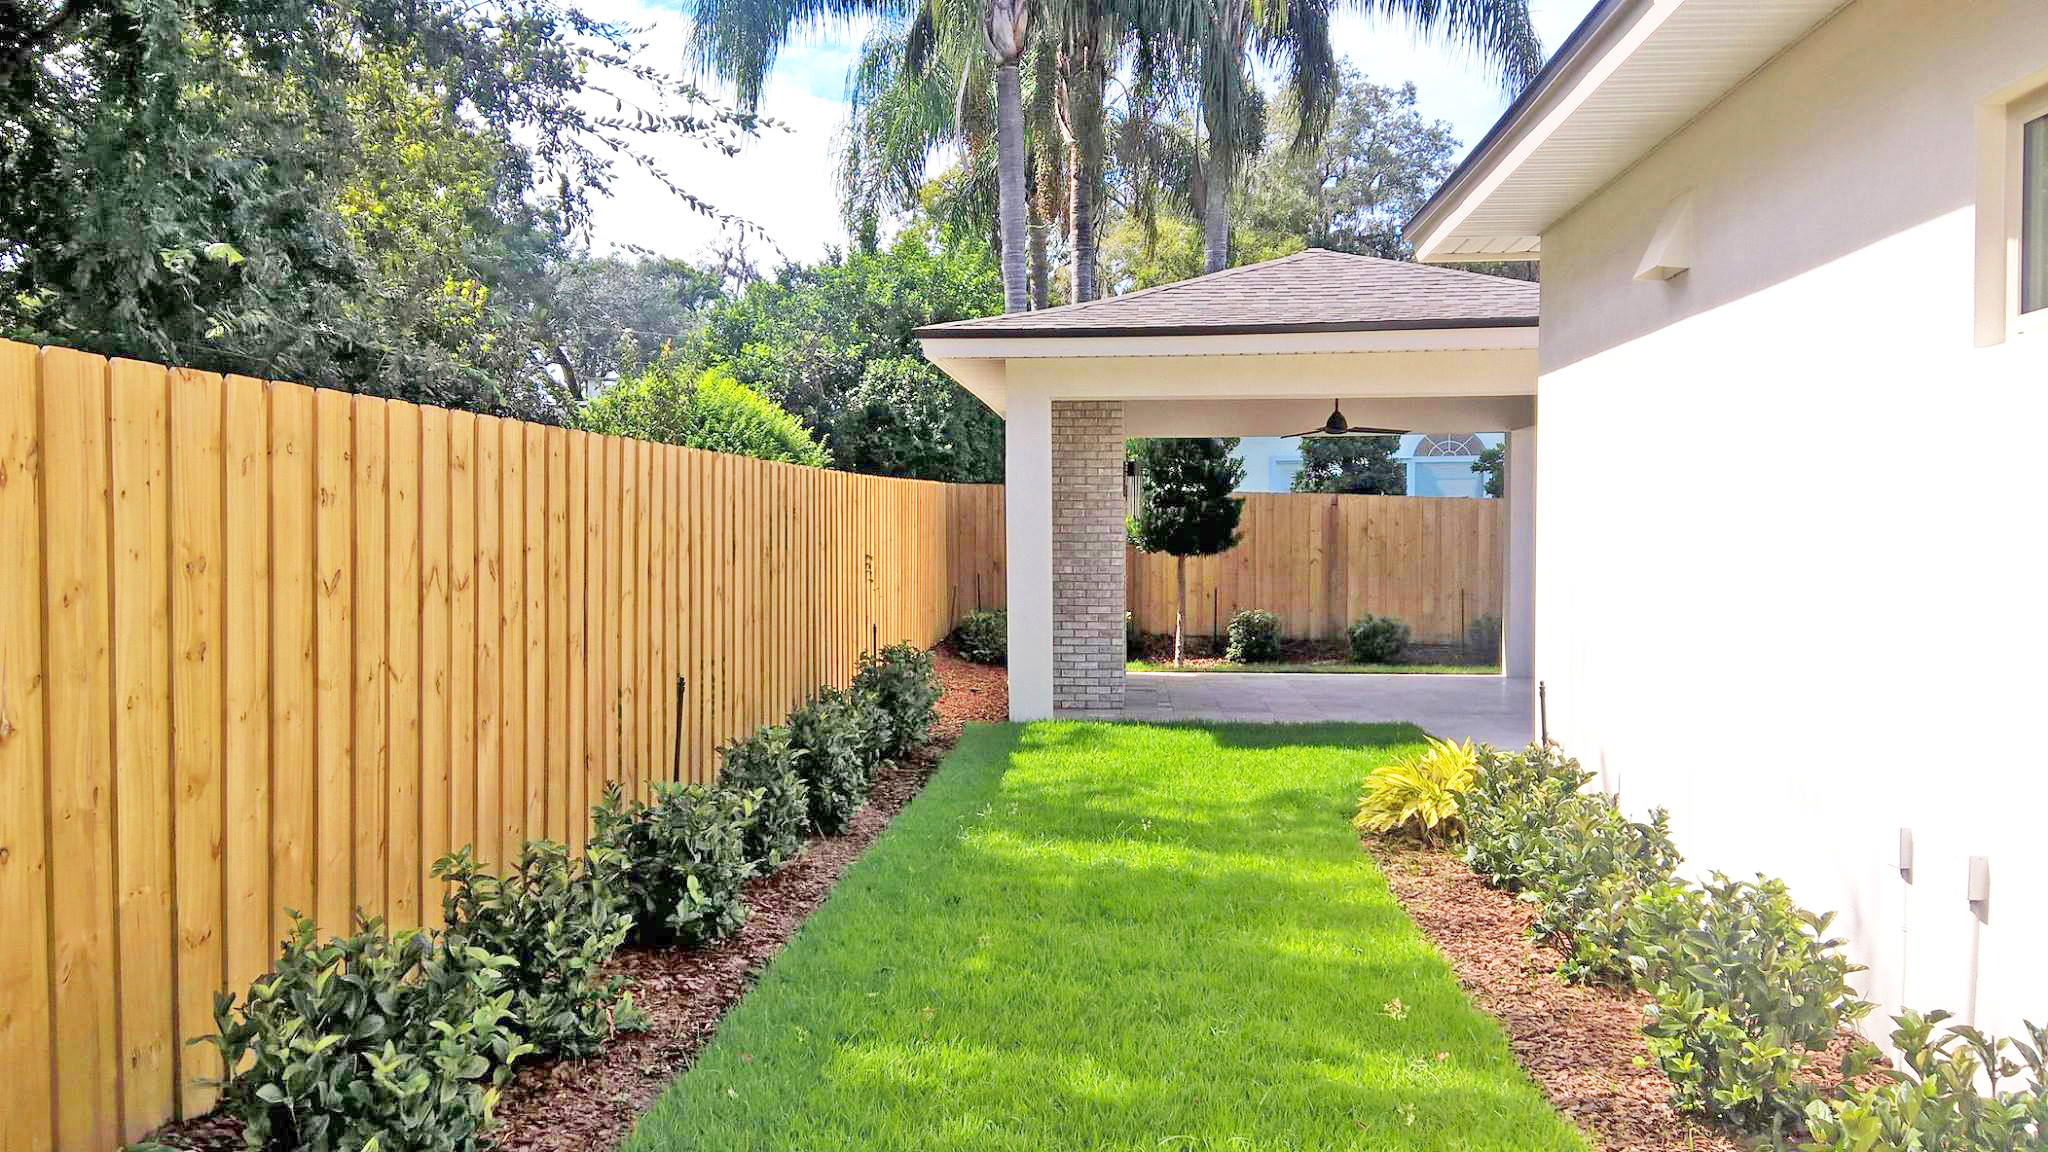 Advantages to the Classic Wood Fence